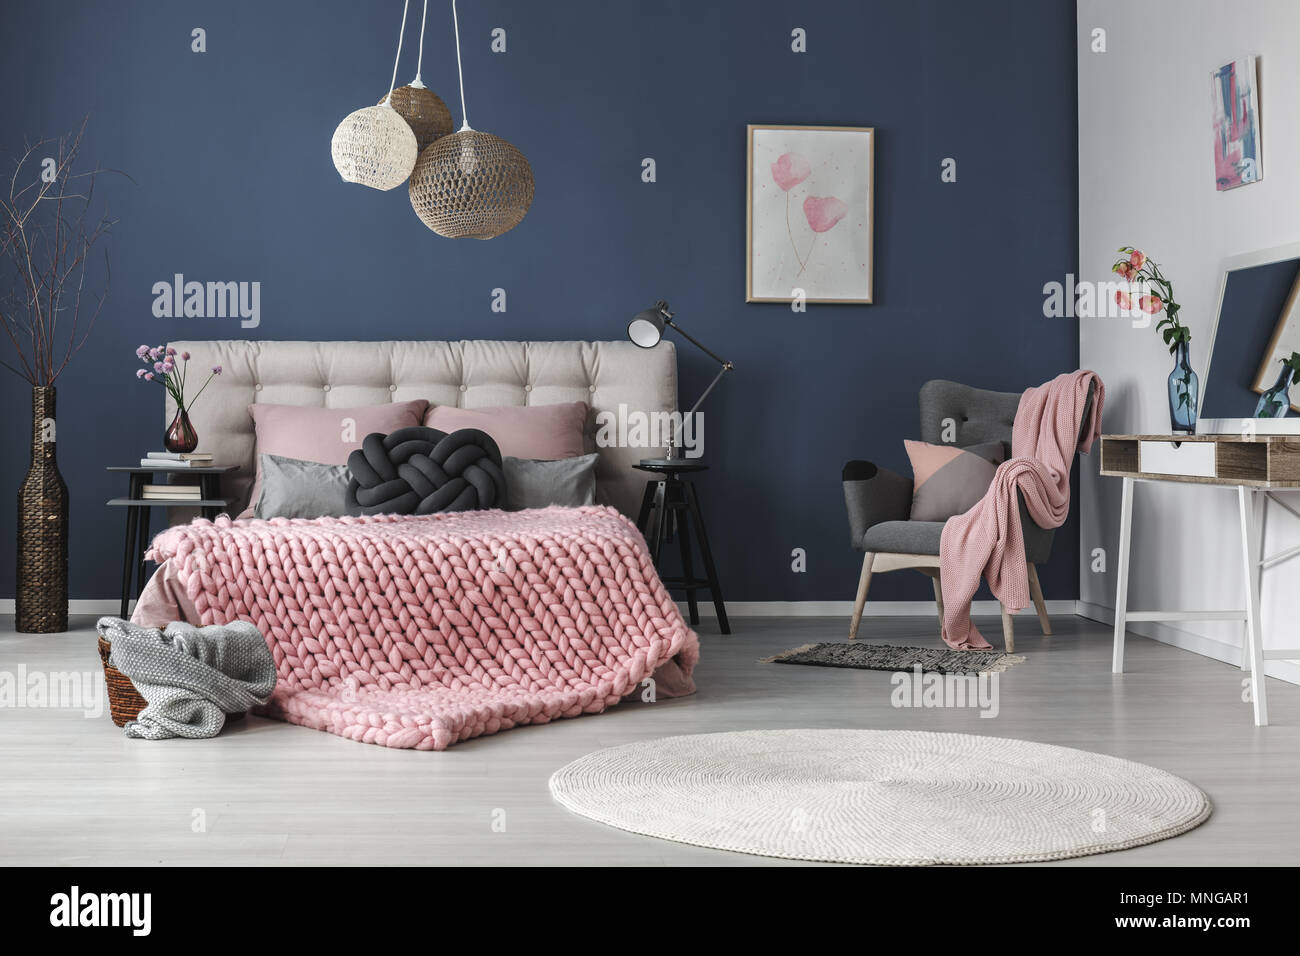 Dark grey comfy armchair with cushion and pink blanket in the corner of the room - Stock Image